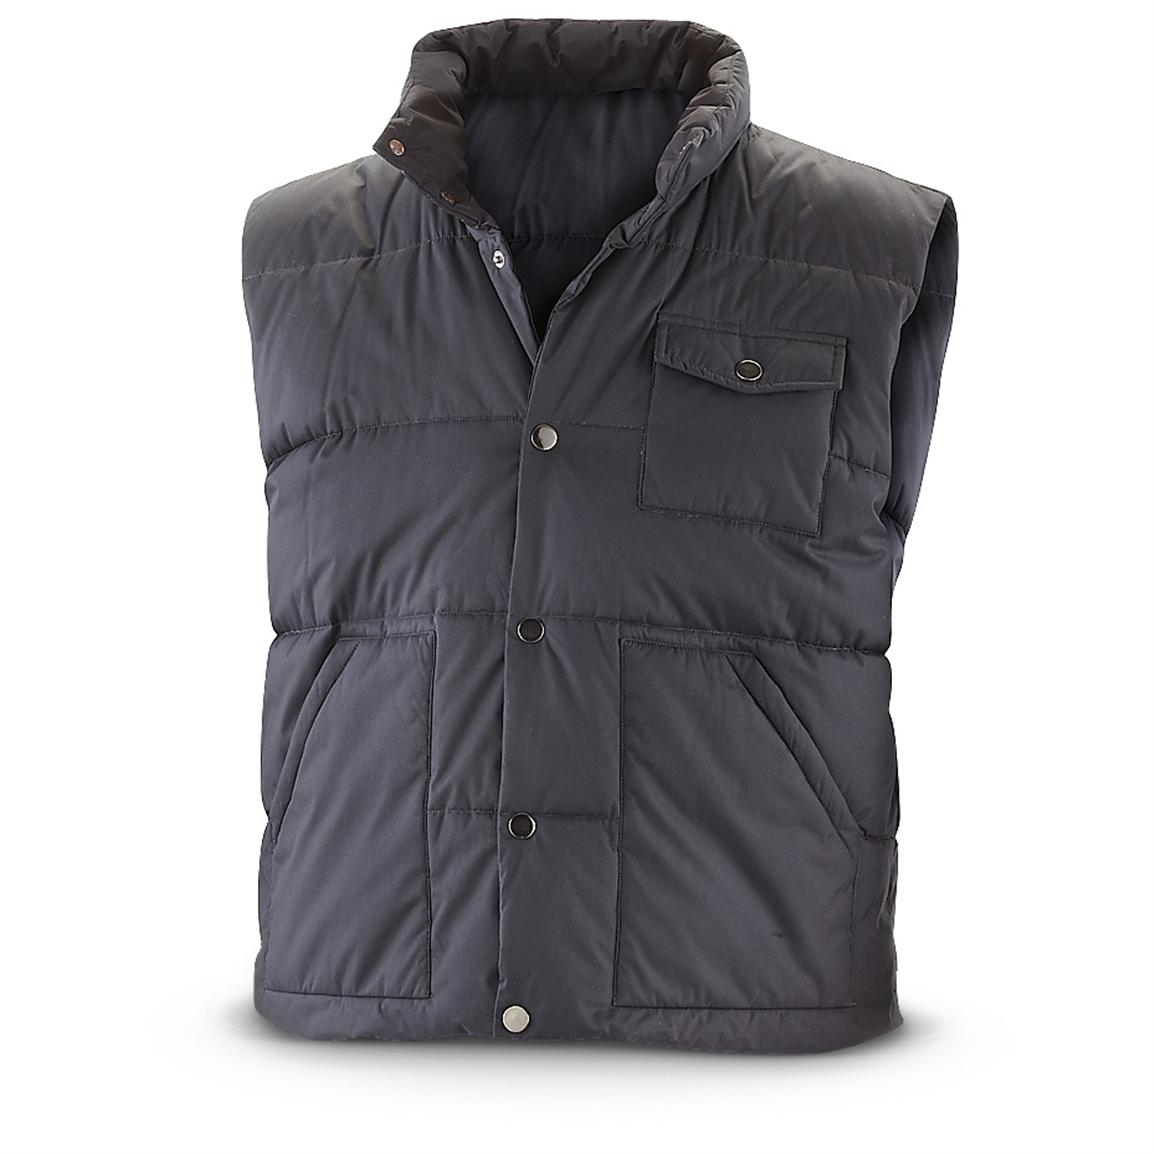 Insulated Polyester Vest, Black